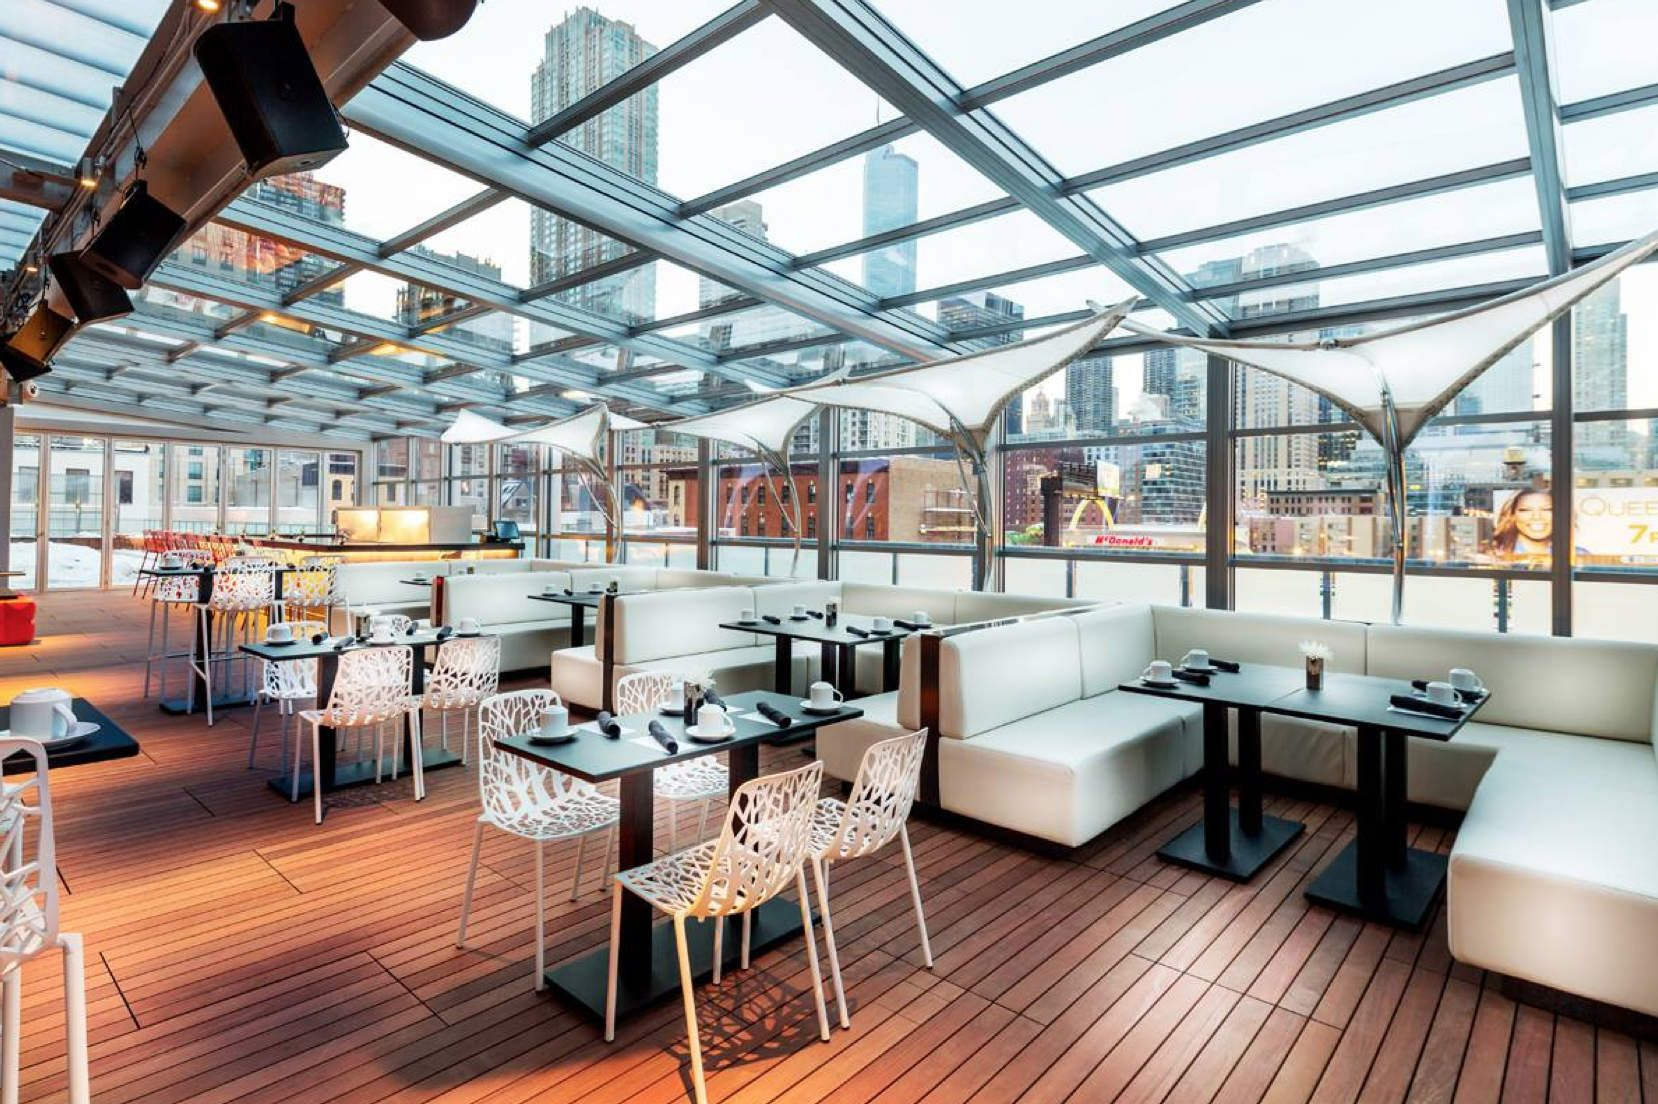 The Best Rooftop Bars in Chicago | Rooftop | Rooftop bars ...